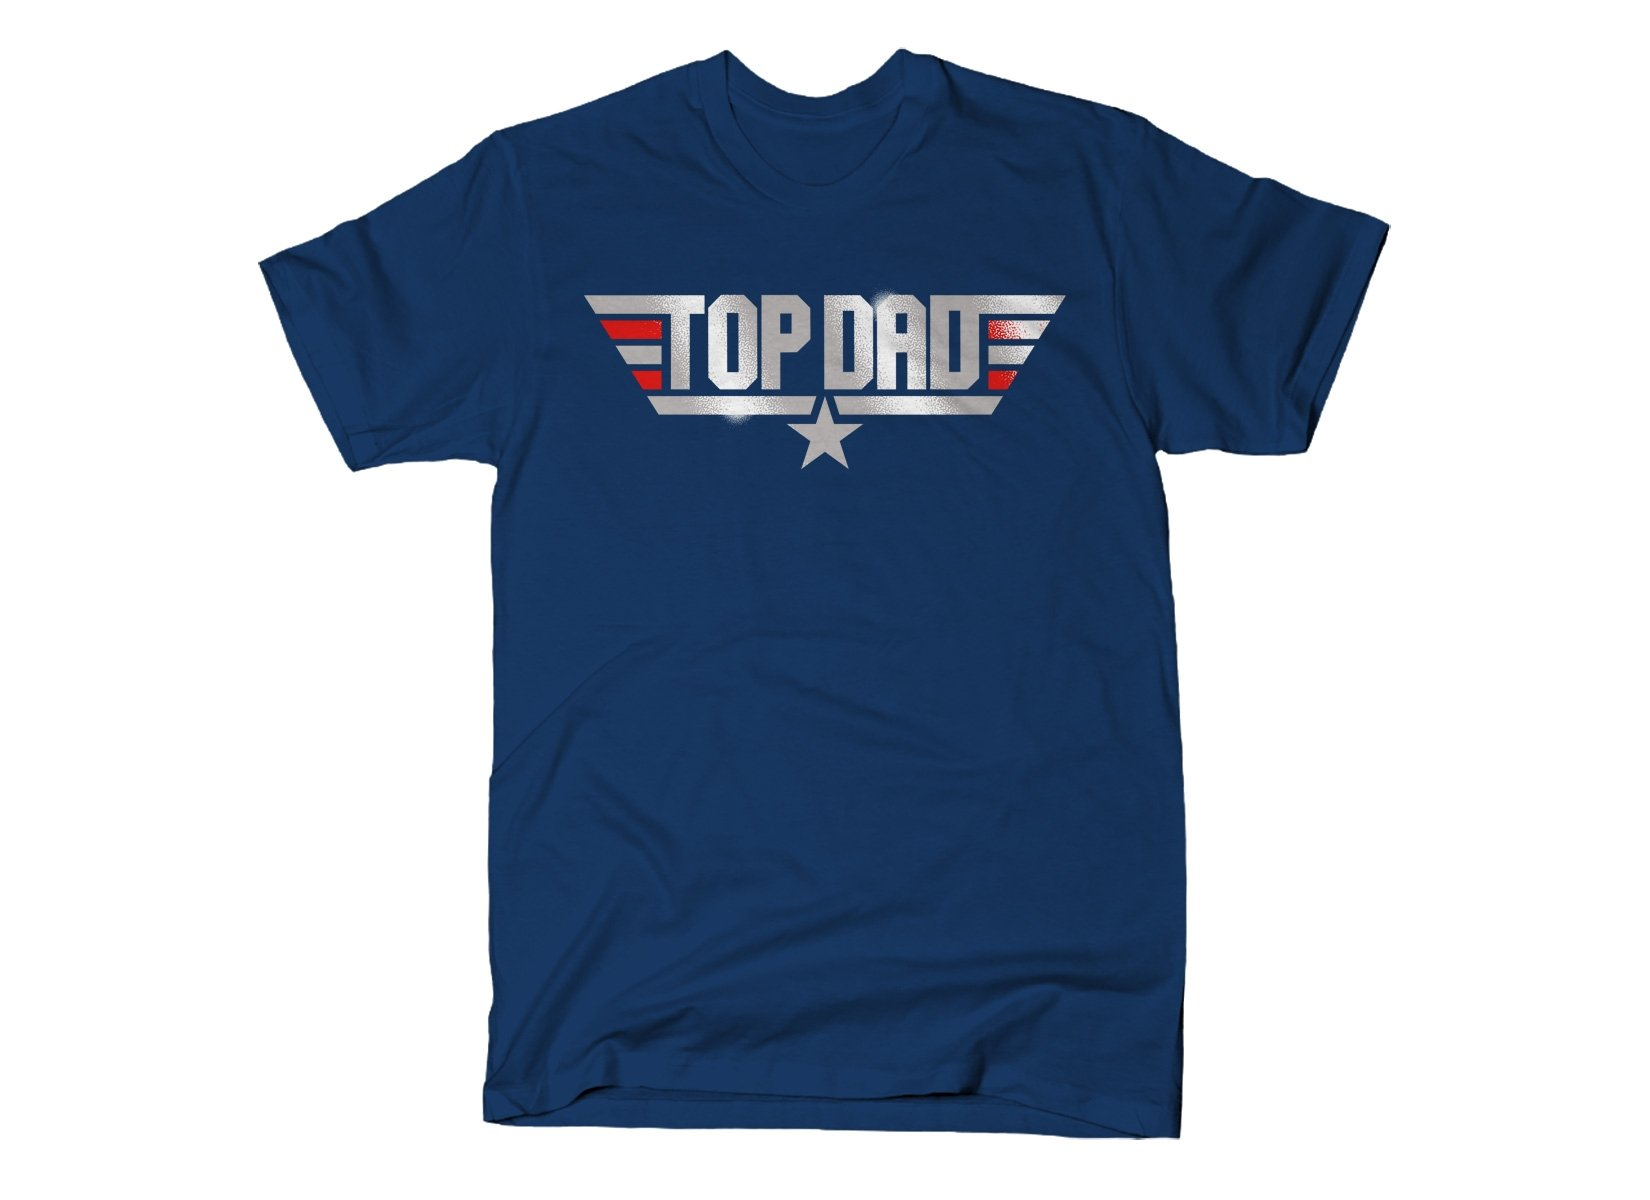 Top Dad on Mens T-Shirt